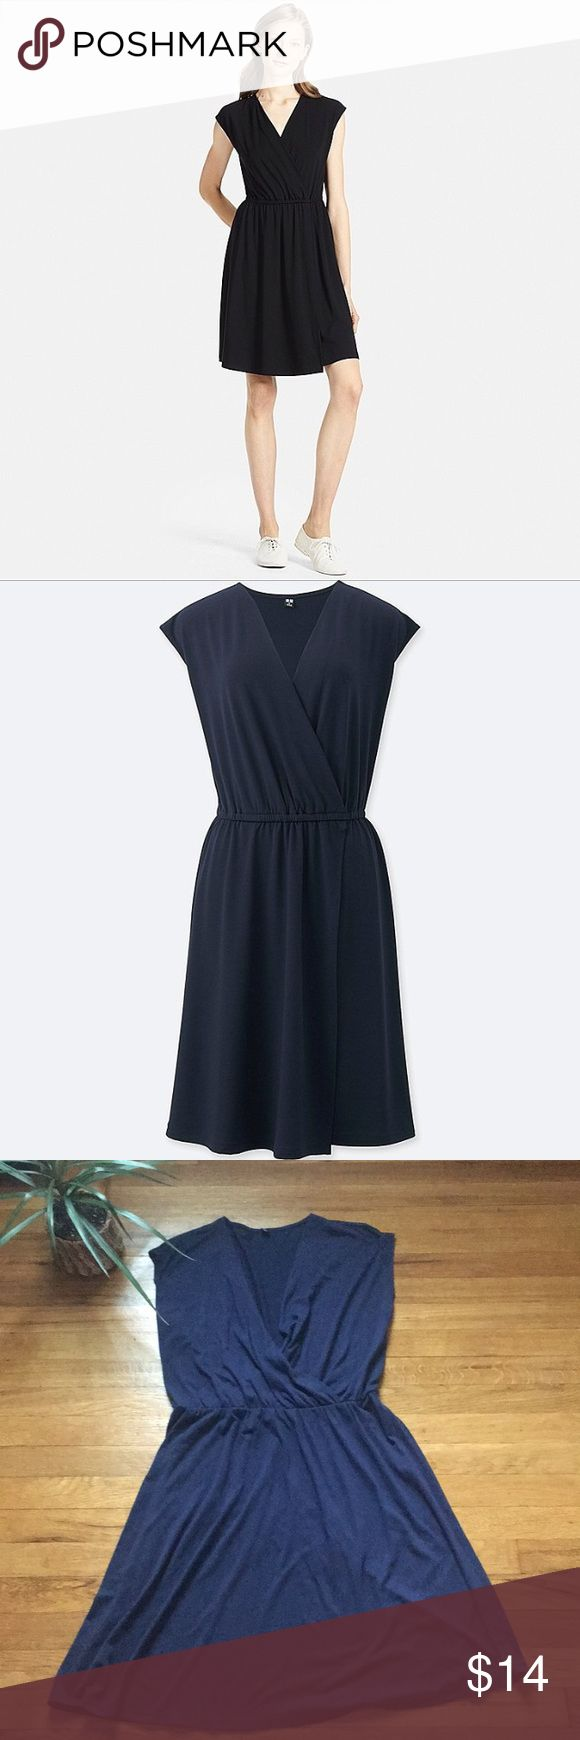 Uniqlo faux wrap jersey dress Uniqlo faux wrap sleeveless dress. SiZe xs, runs large. Navy. In good used condition. Feel free to ask any questions 😊 Dresses